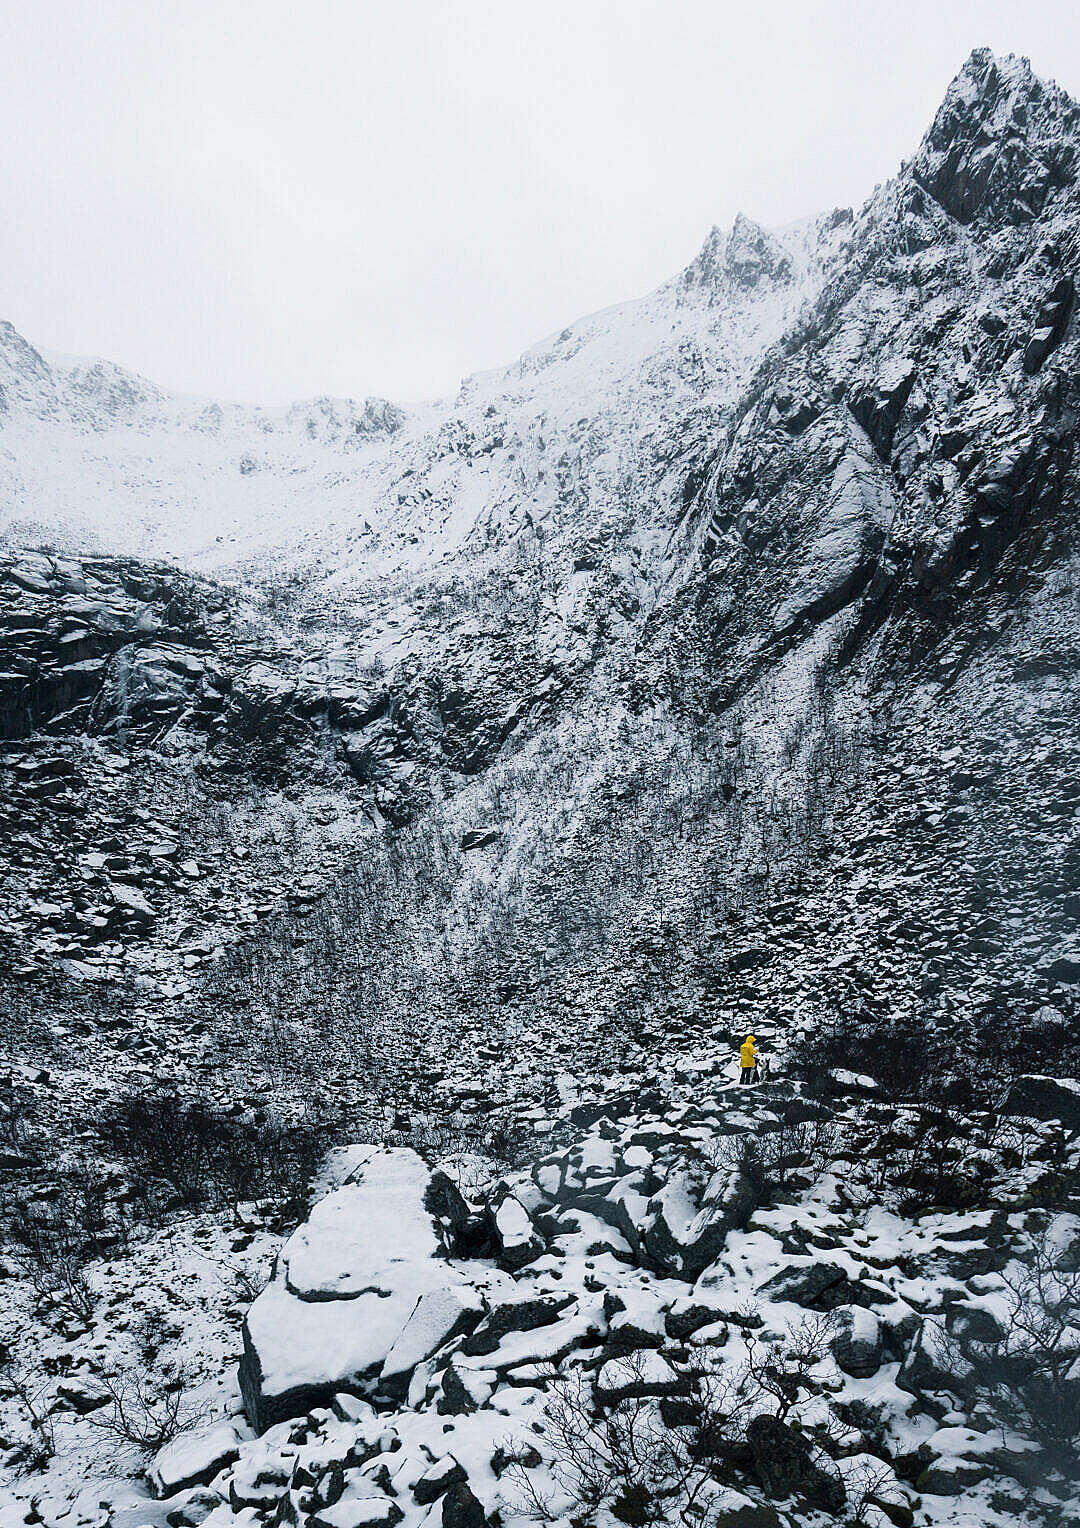 Download Tiny Person in Yellow Jacket Standing between Rocks Covered by Snow FREE Stock Photo